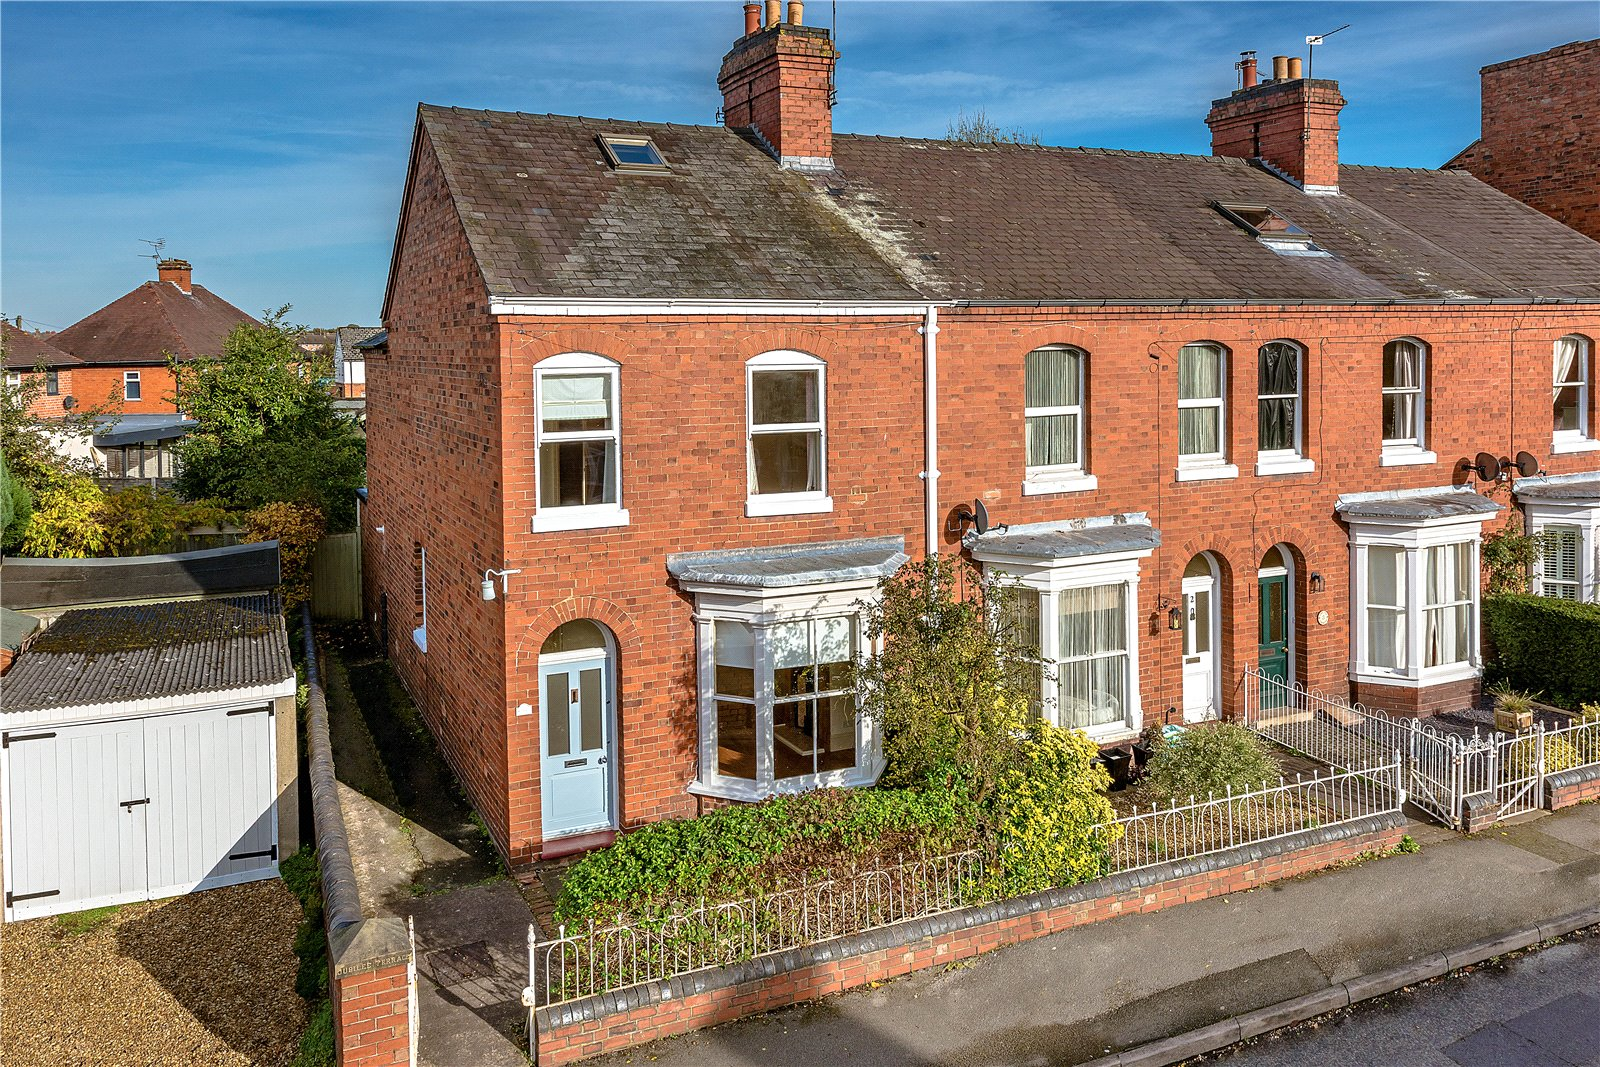 3 Bedrooms End Of Terrace House for sale in 1 Avenue Road South, Newport, Shropshire, TF10